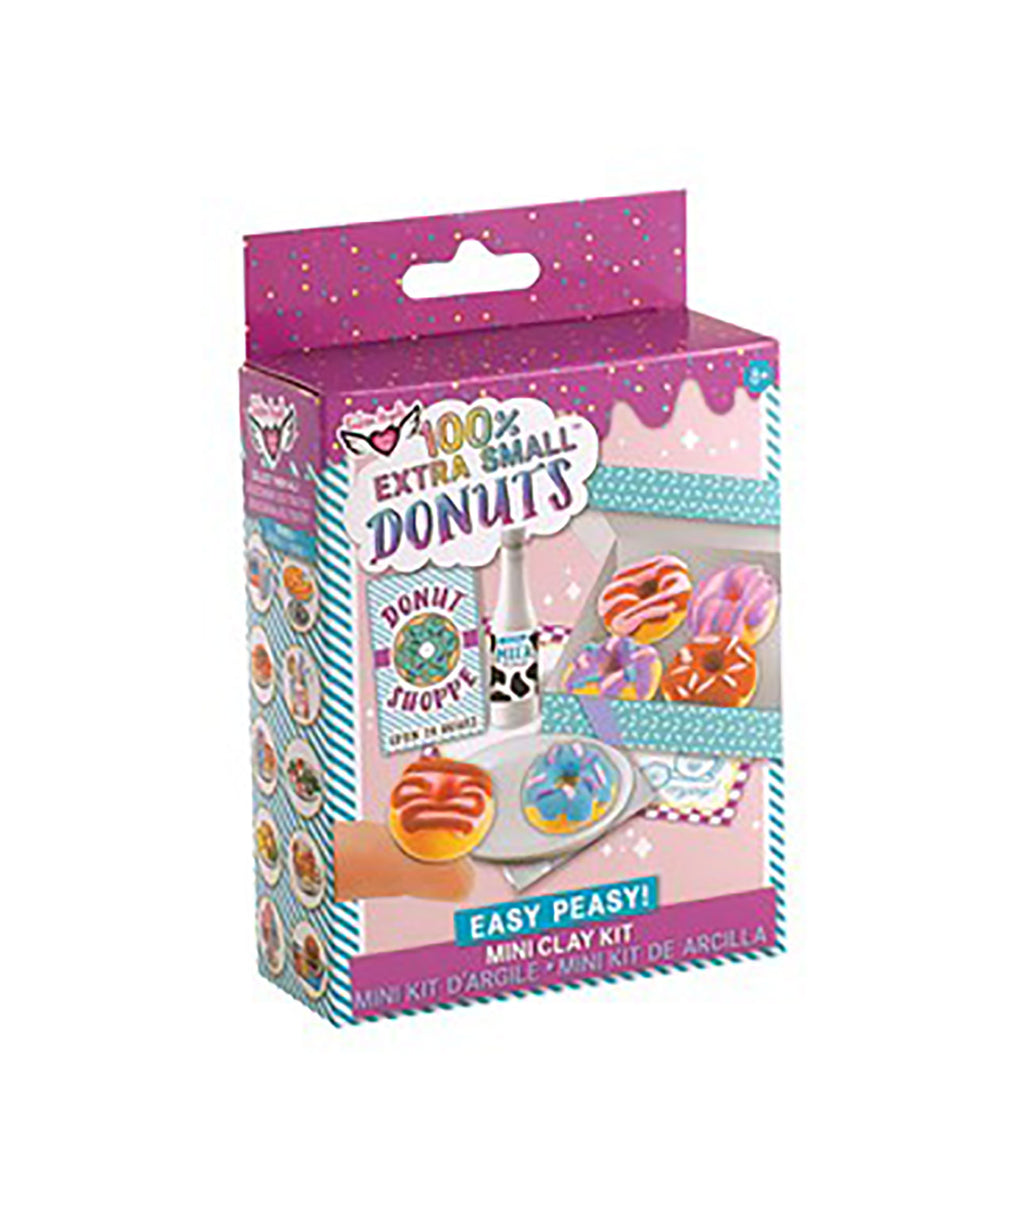 Fashion Angels Mini Clay Donuts Kit